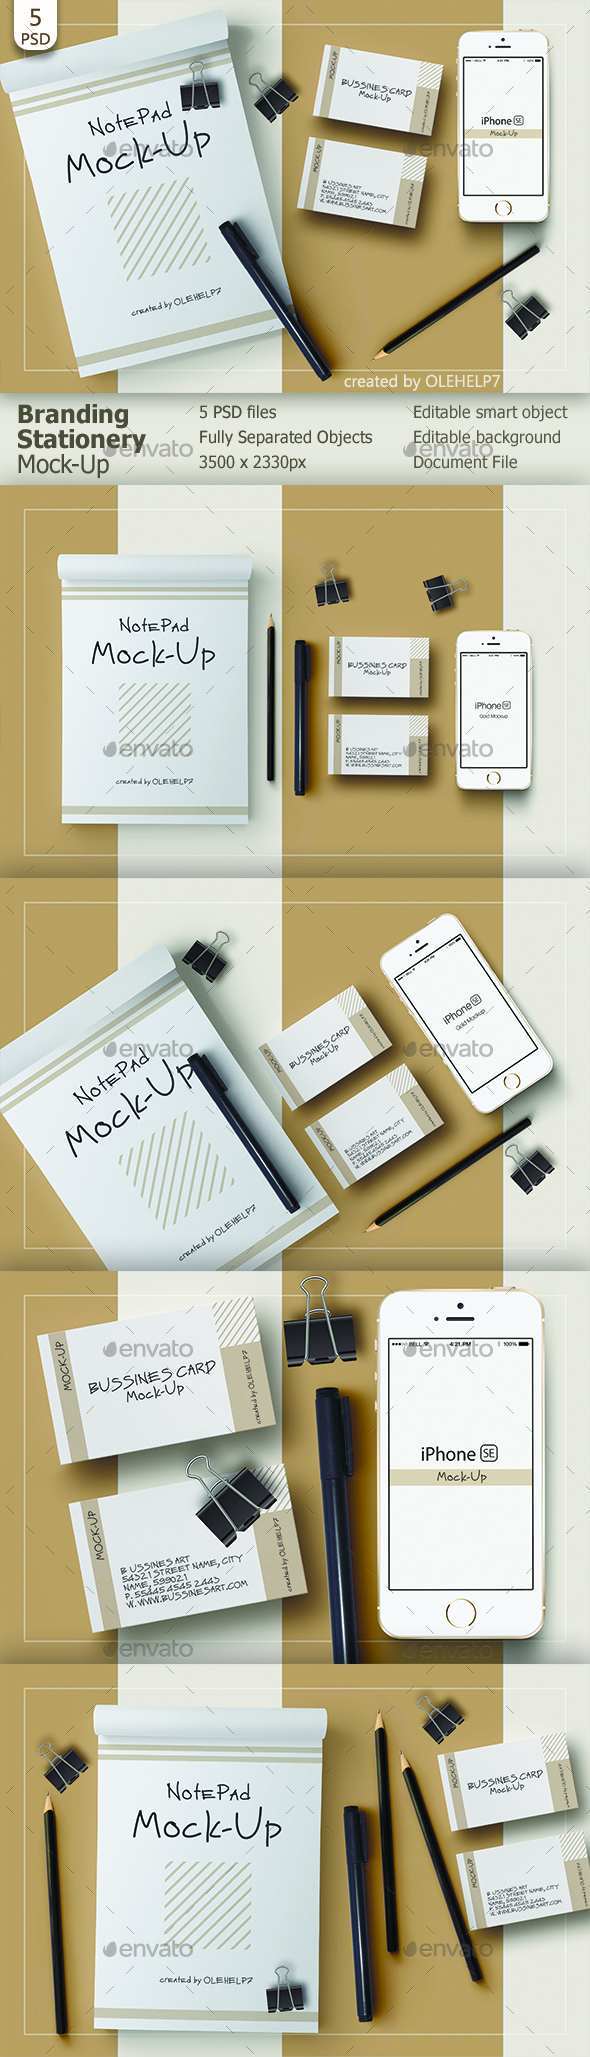 Branding Stationery Mock-Up - Stationery Print